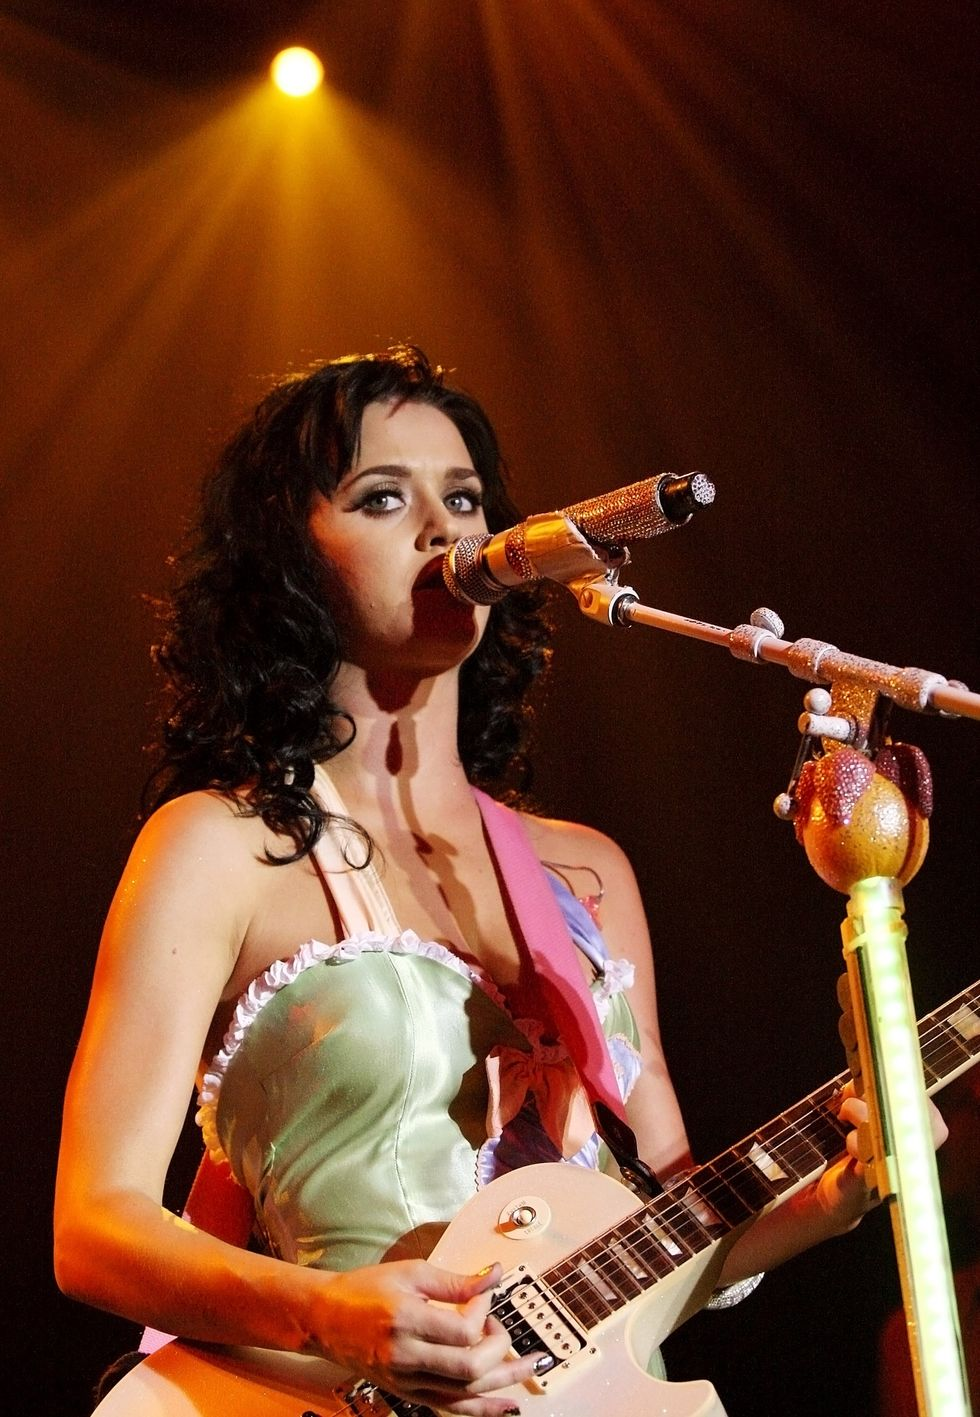 katy-perry-performs-at-the-tivoli-in-brisbane-13